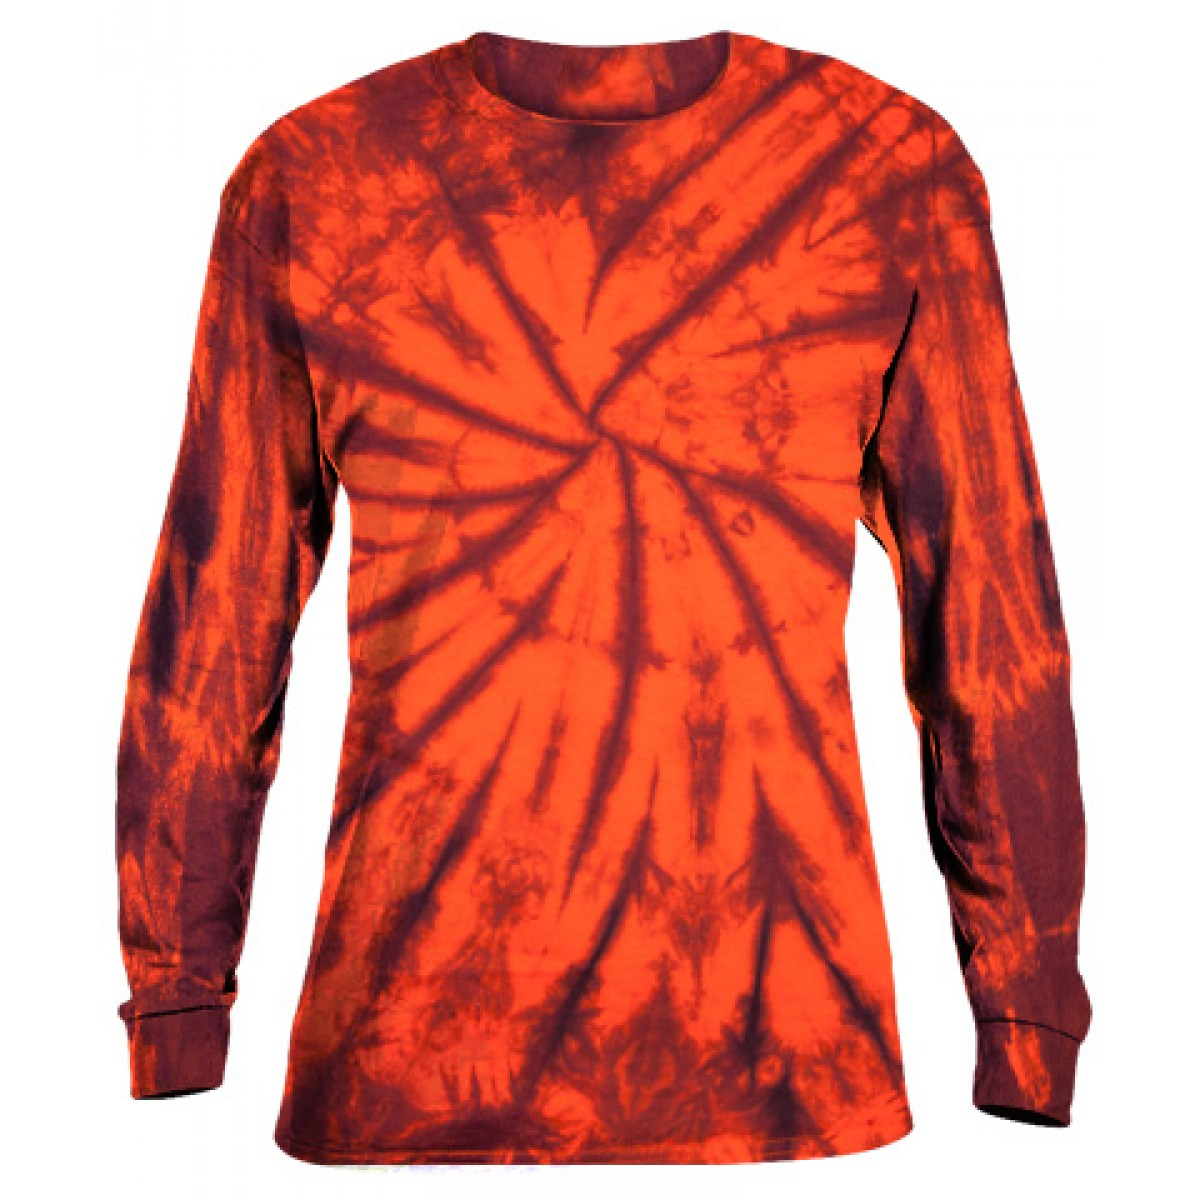 Tie-Dye Long Sleeve Shirt -Orange-YS